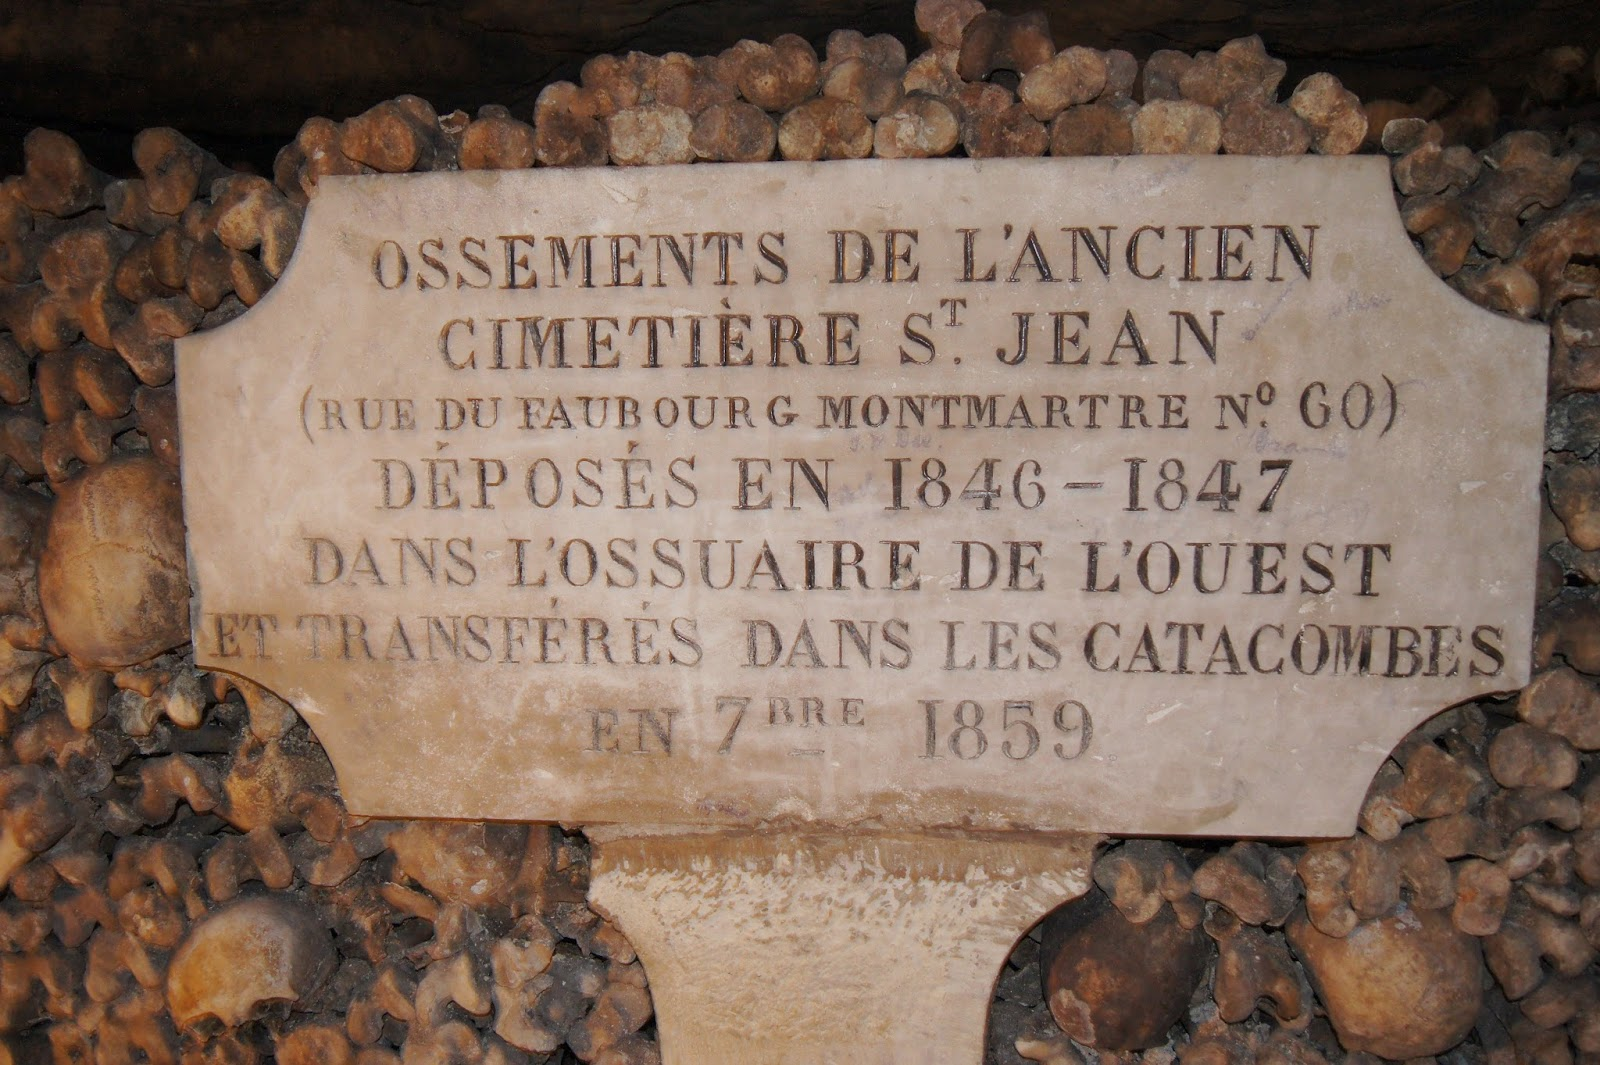 Bones from St. Jean Cemetery-The Catacombs